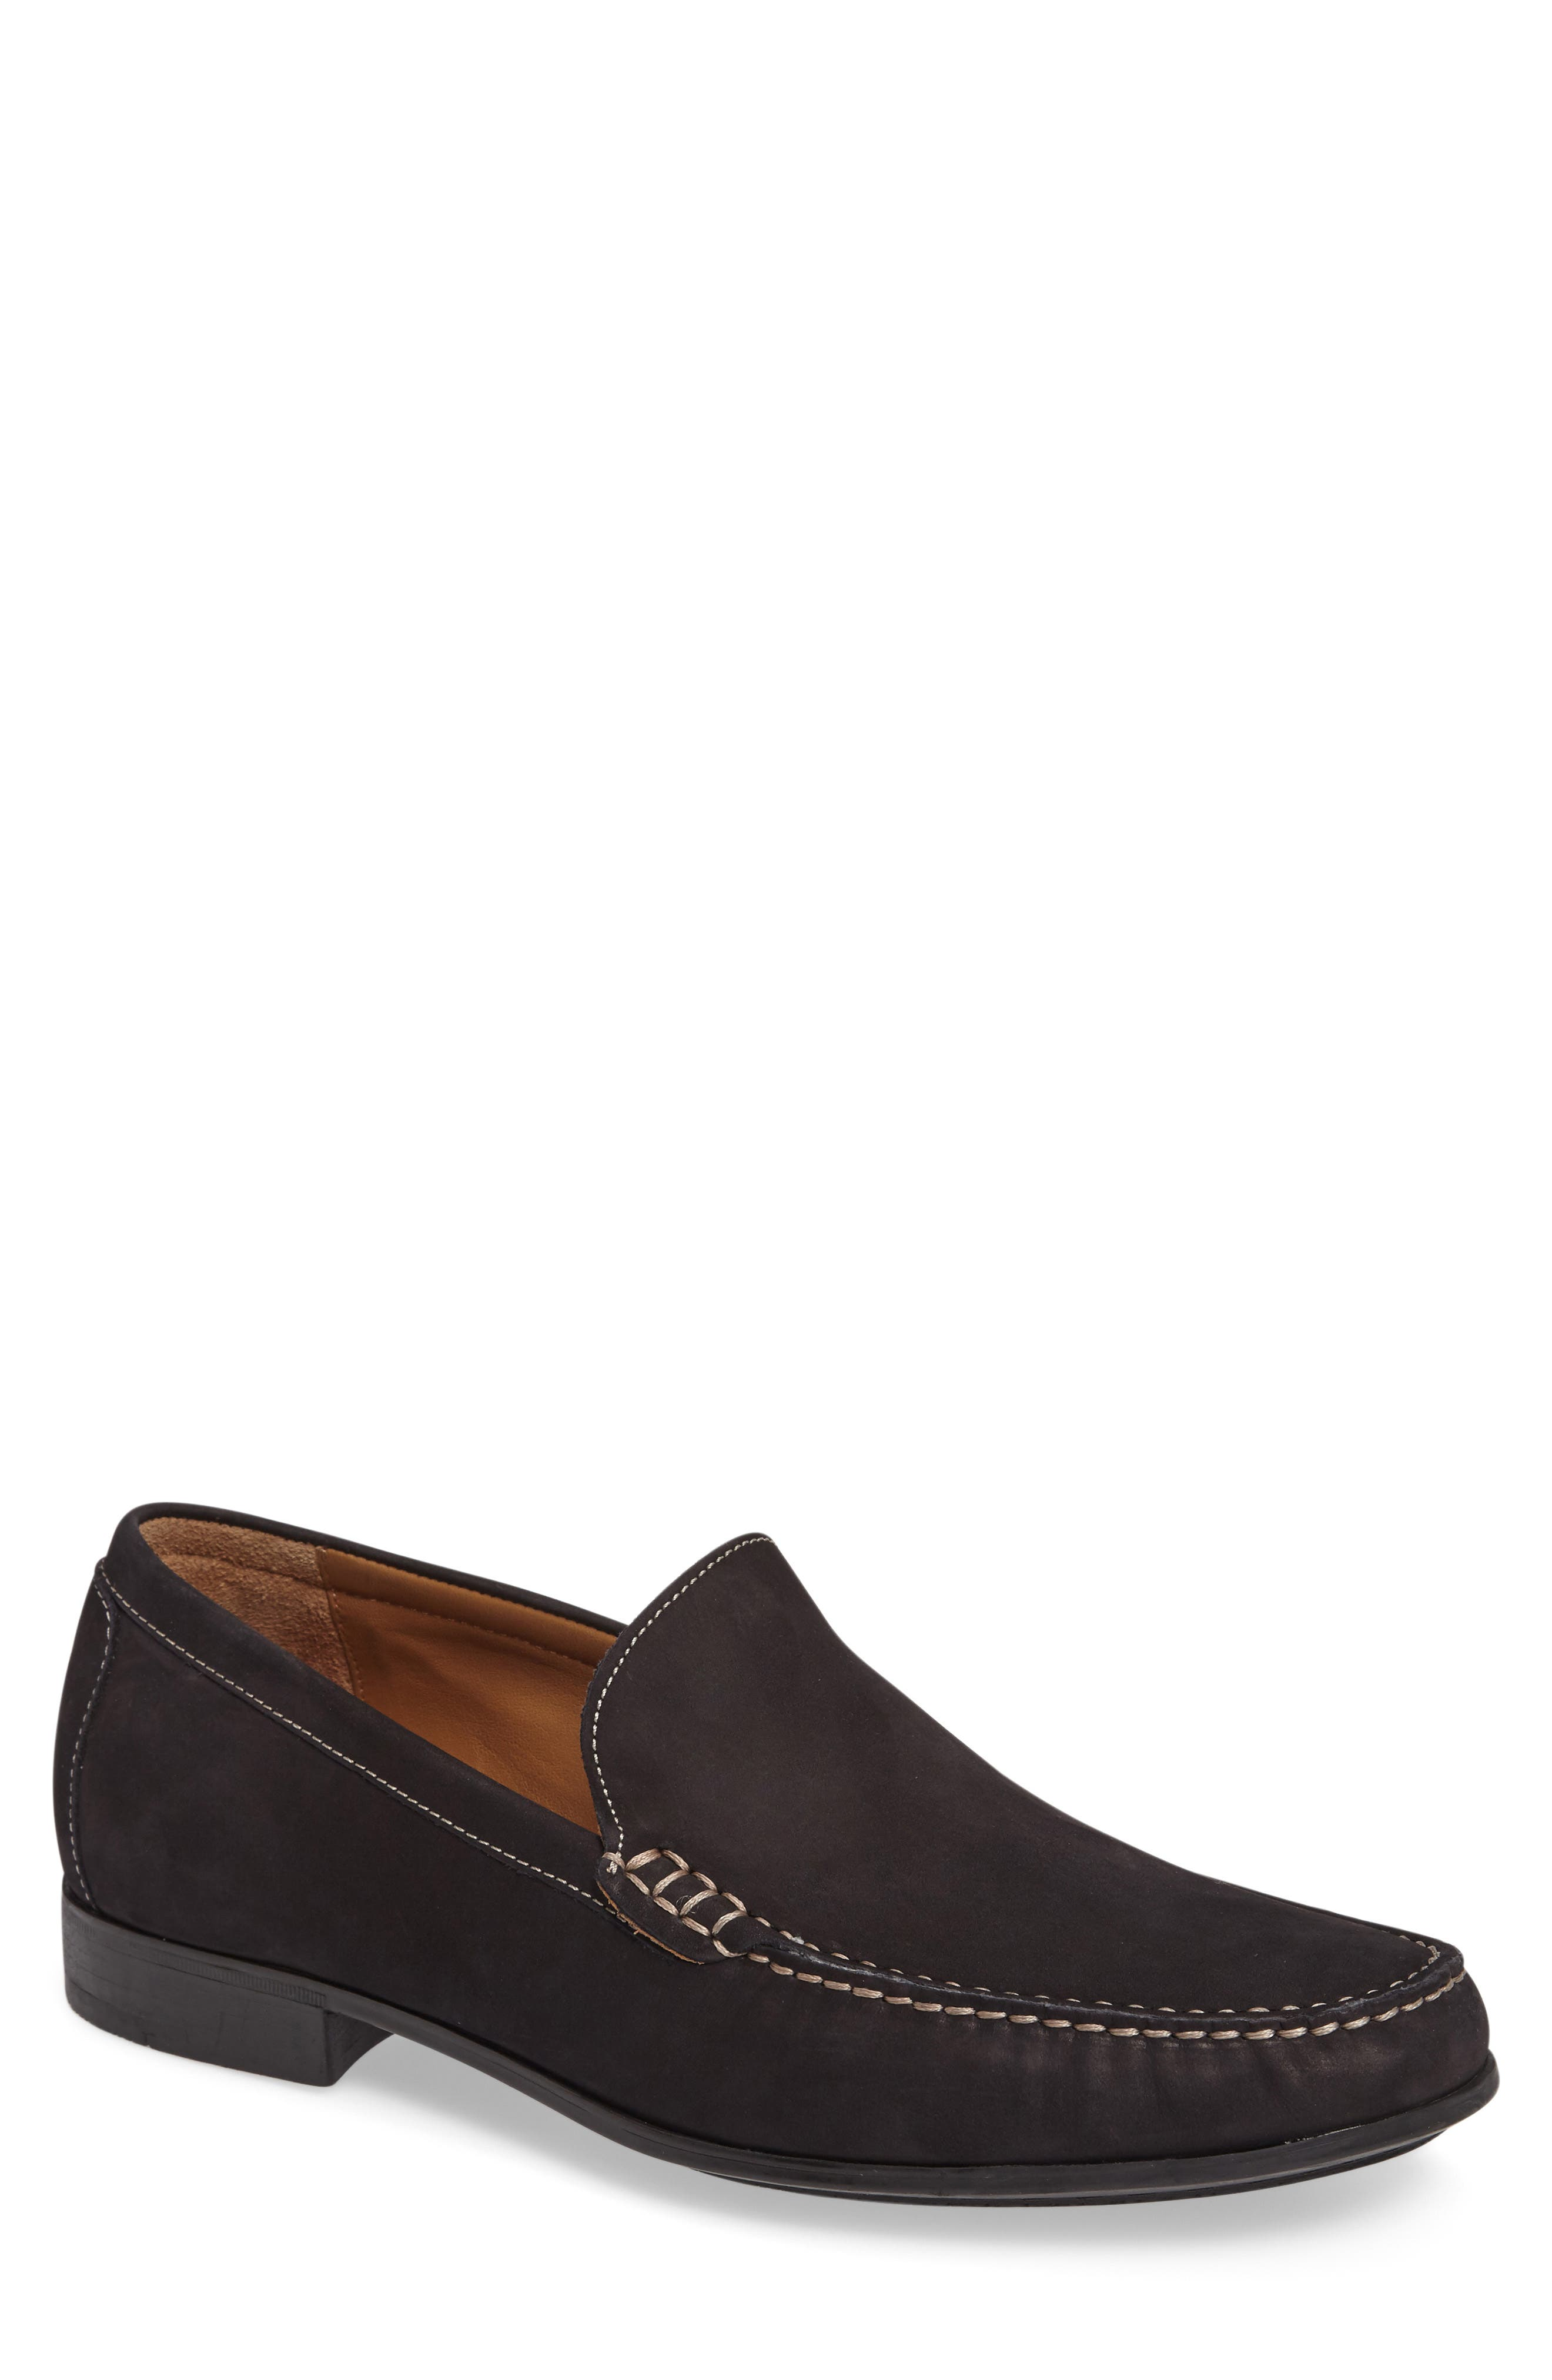 Cresswell Venetian Loafer,                             Main thumbnail 4, color,